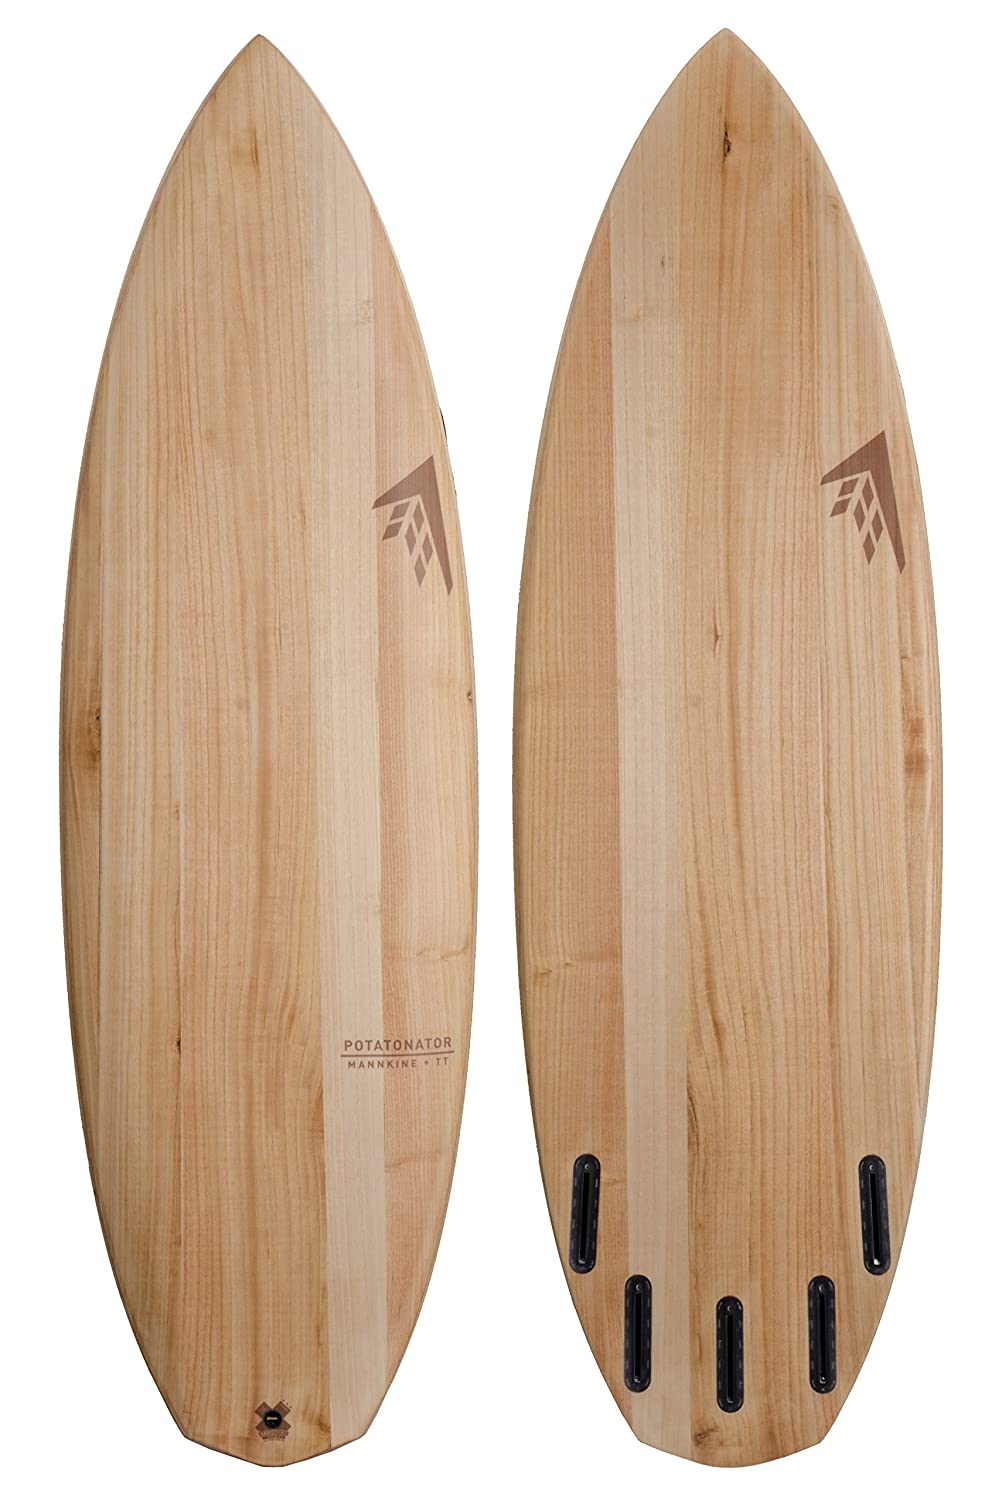 FireWire - Tabla de Surf Shortboard potatonator - Talla: one size: Amazon.es: Deportes y aire libre